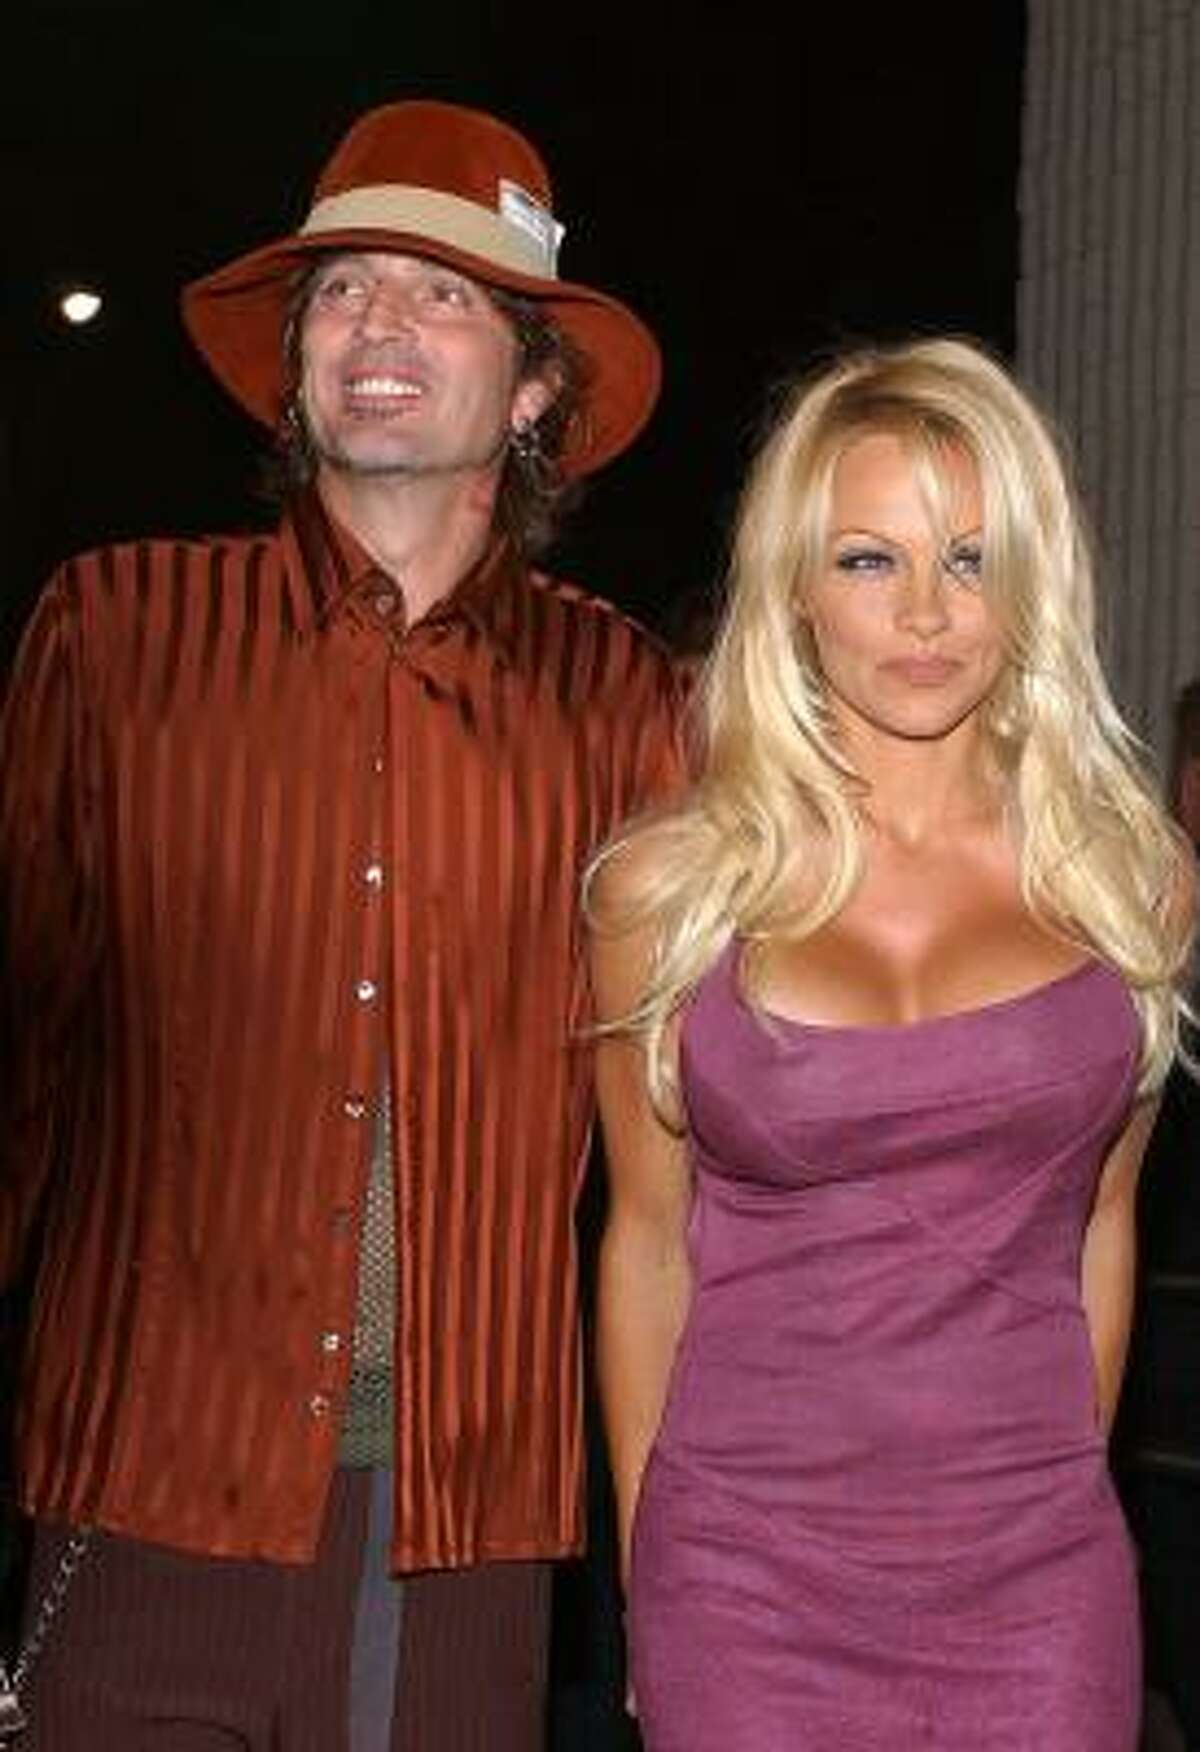 Pamela Anderson has had a very public on again off again relationship with ex-husband Tommy Lee. Each have been married multiple times.